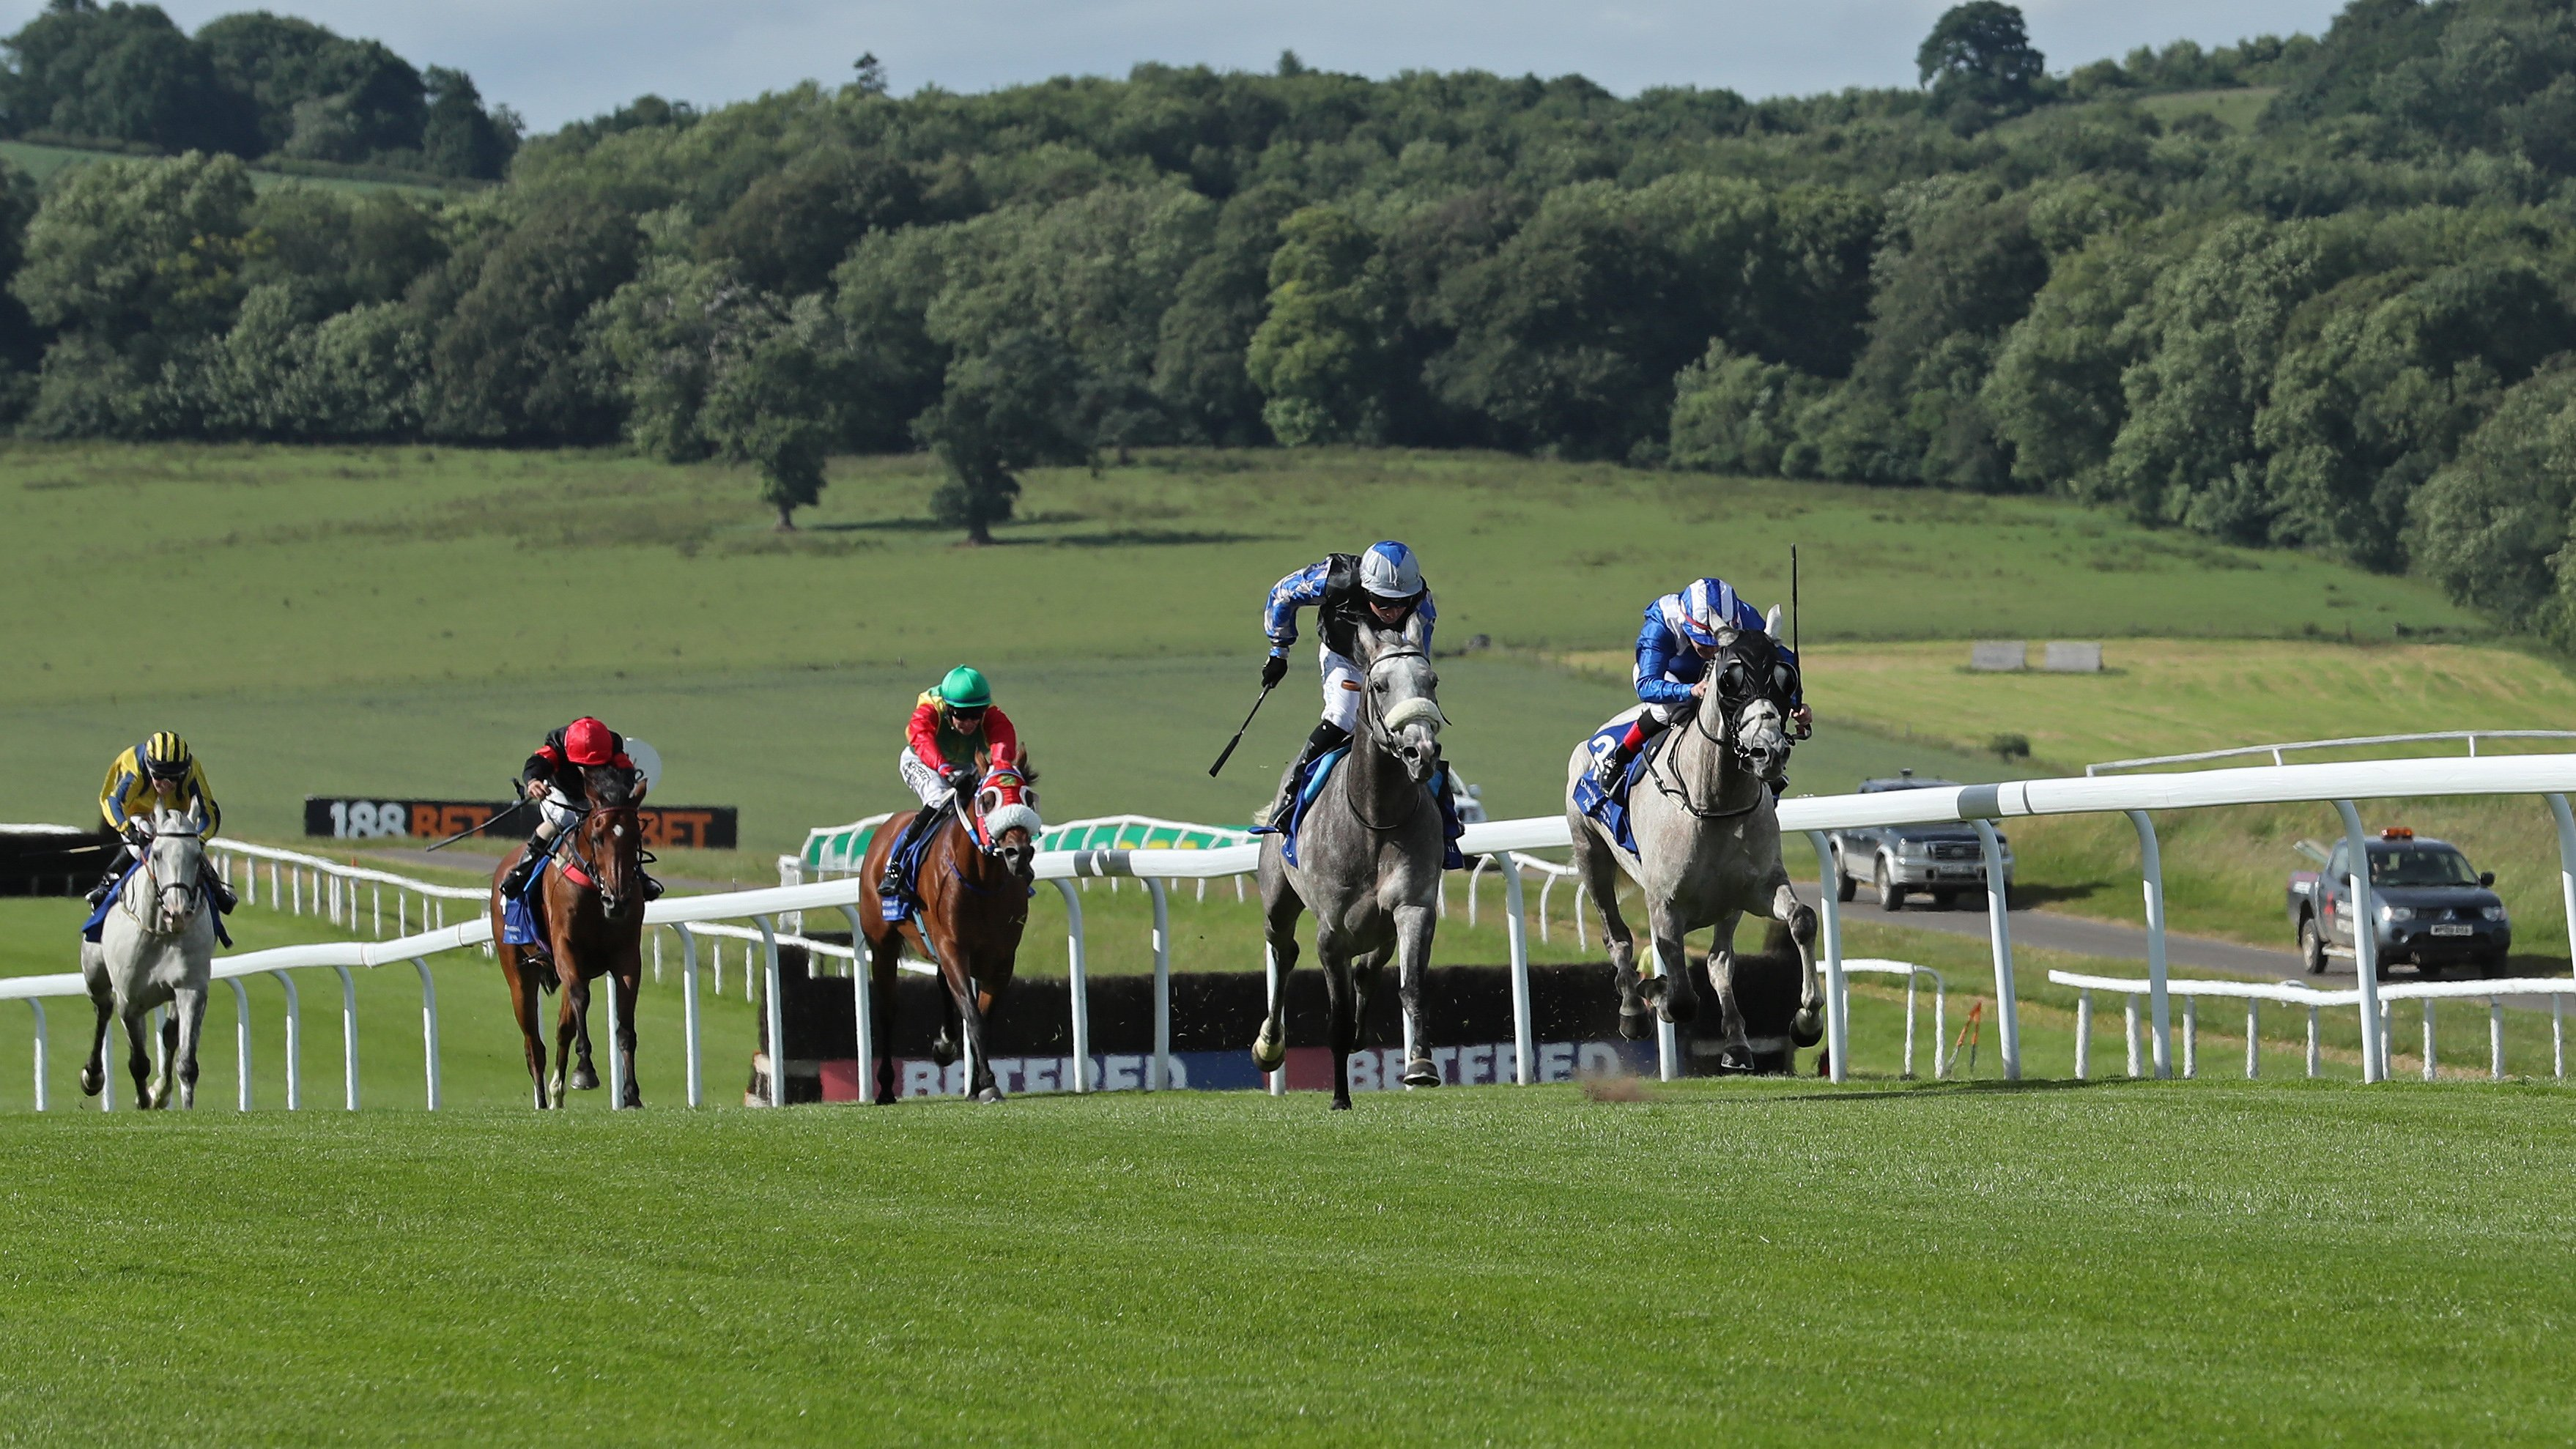 Chepstow's undulating course